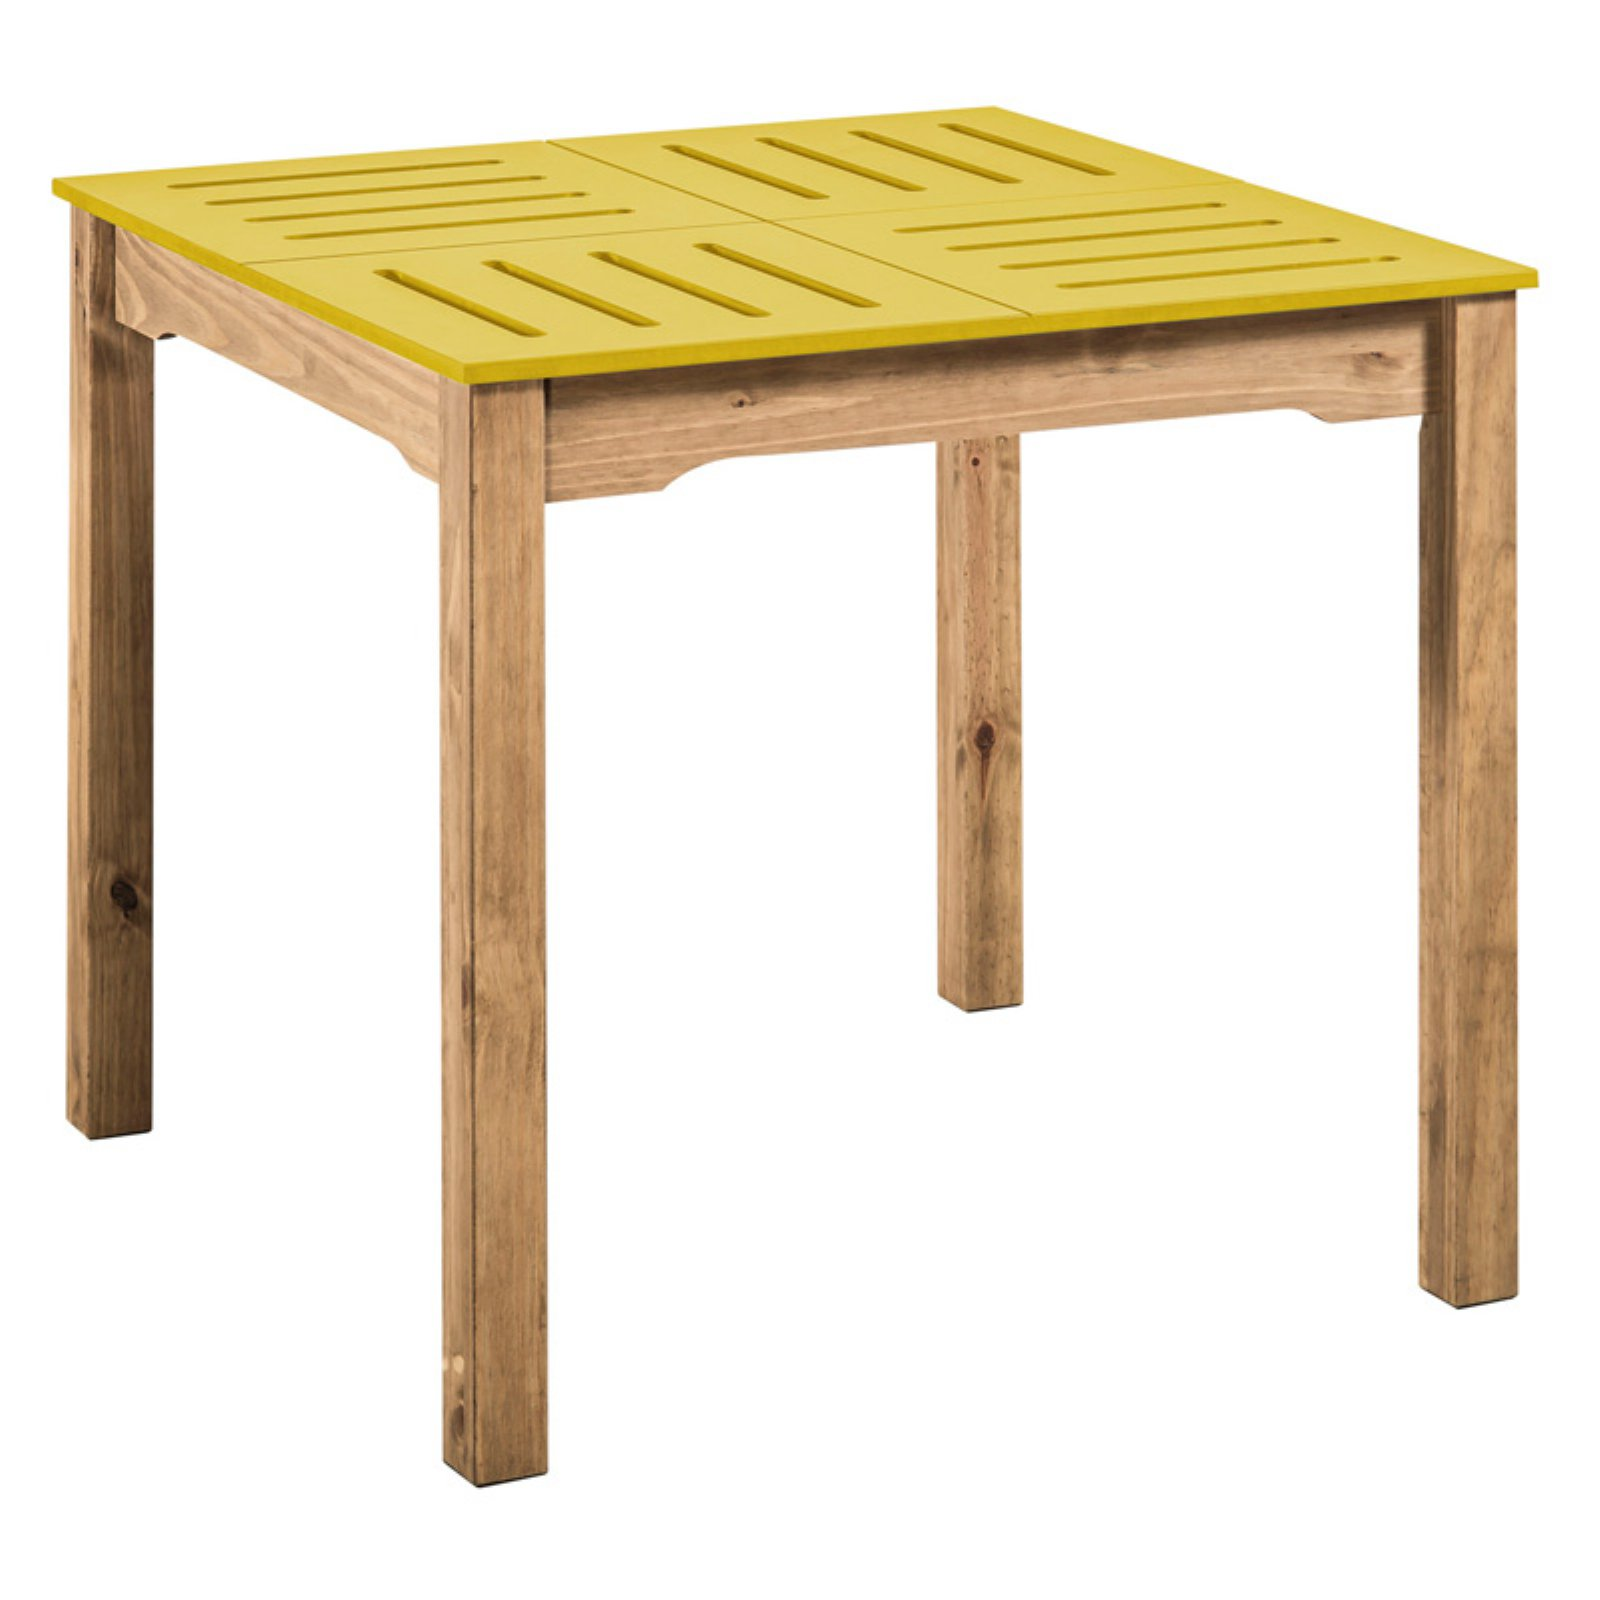 """Mid- Century Modern Stillwell 31.5"""" Square Table in Yellow and Natural Wood"""